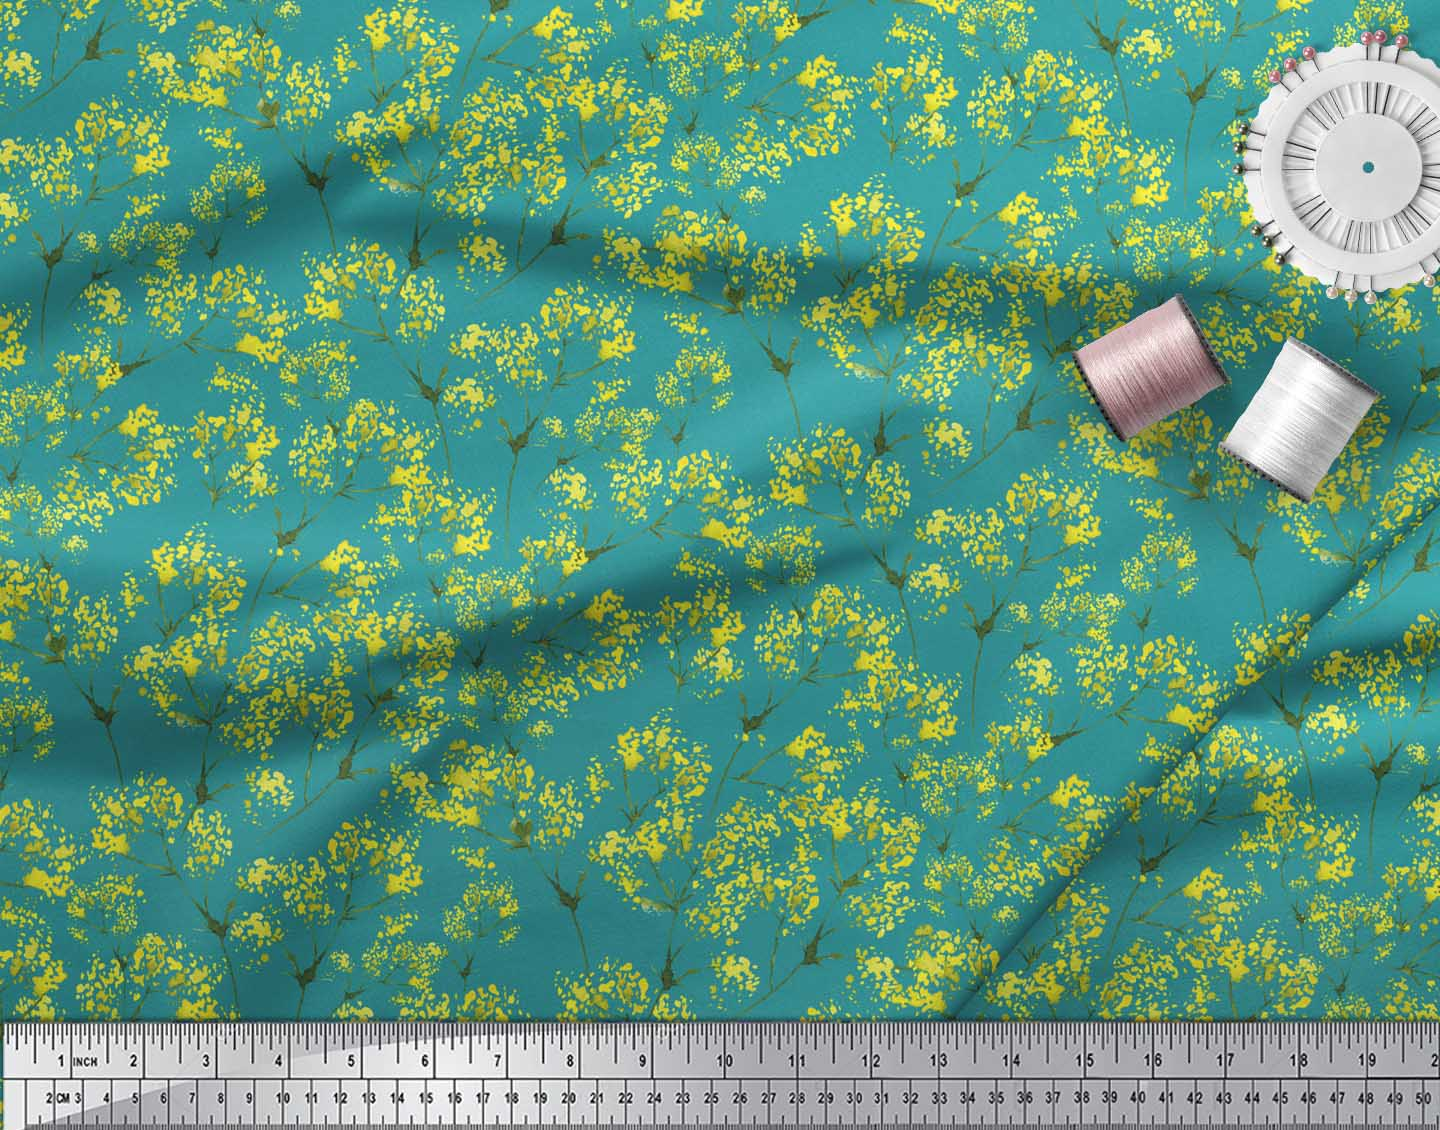 Soimoi-Green-Cotton-Poplin-Fabric-Yellow-Mustard-Leaves-Printed-hG2 thumbnail 3